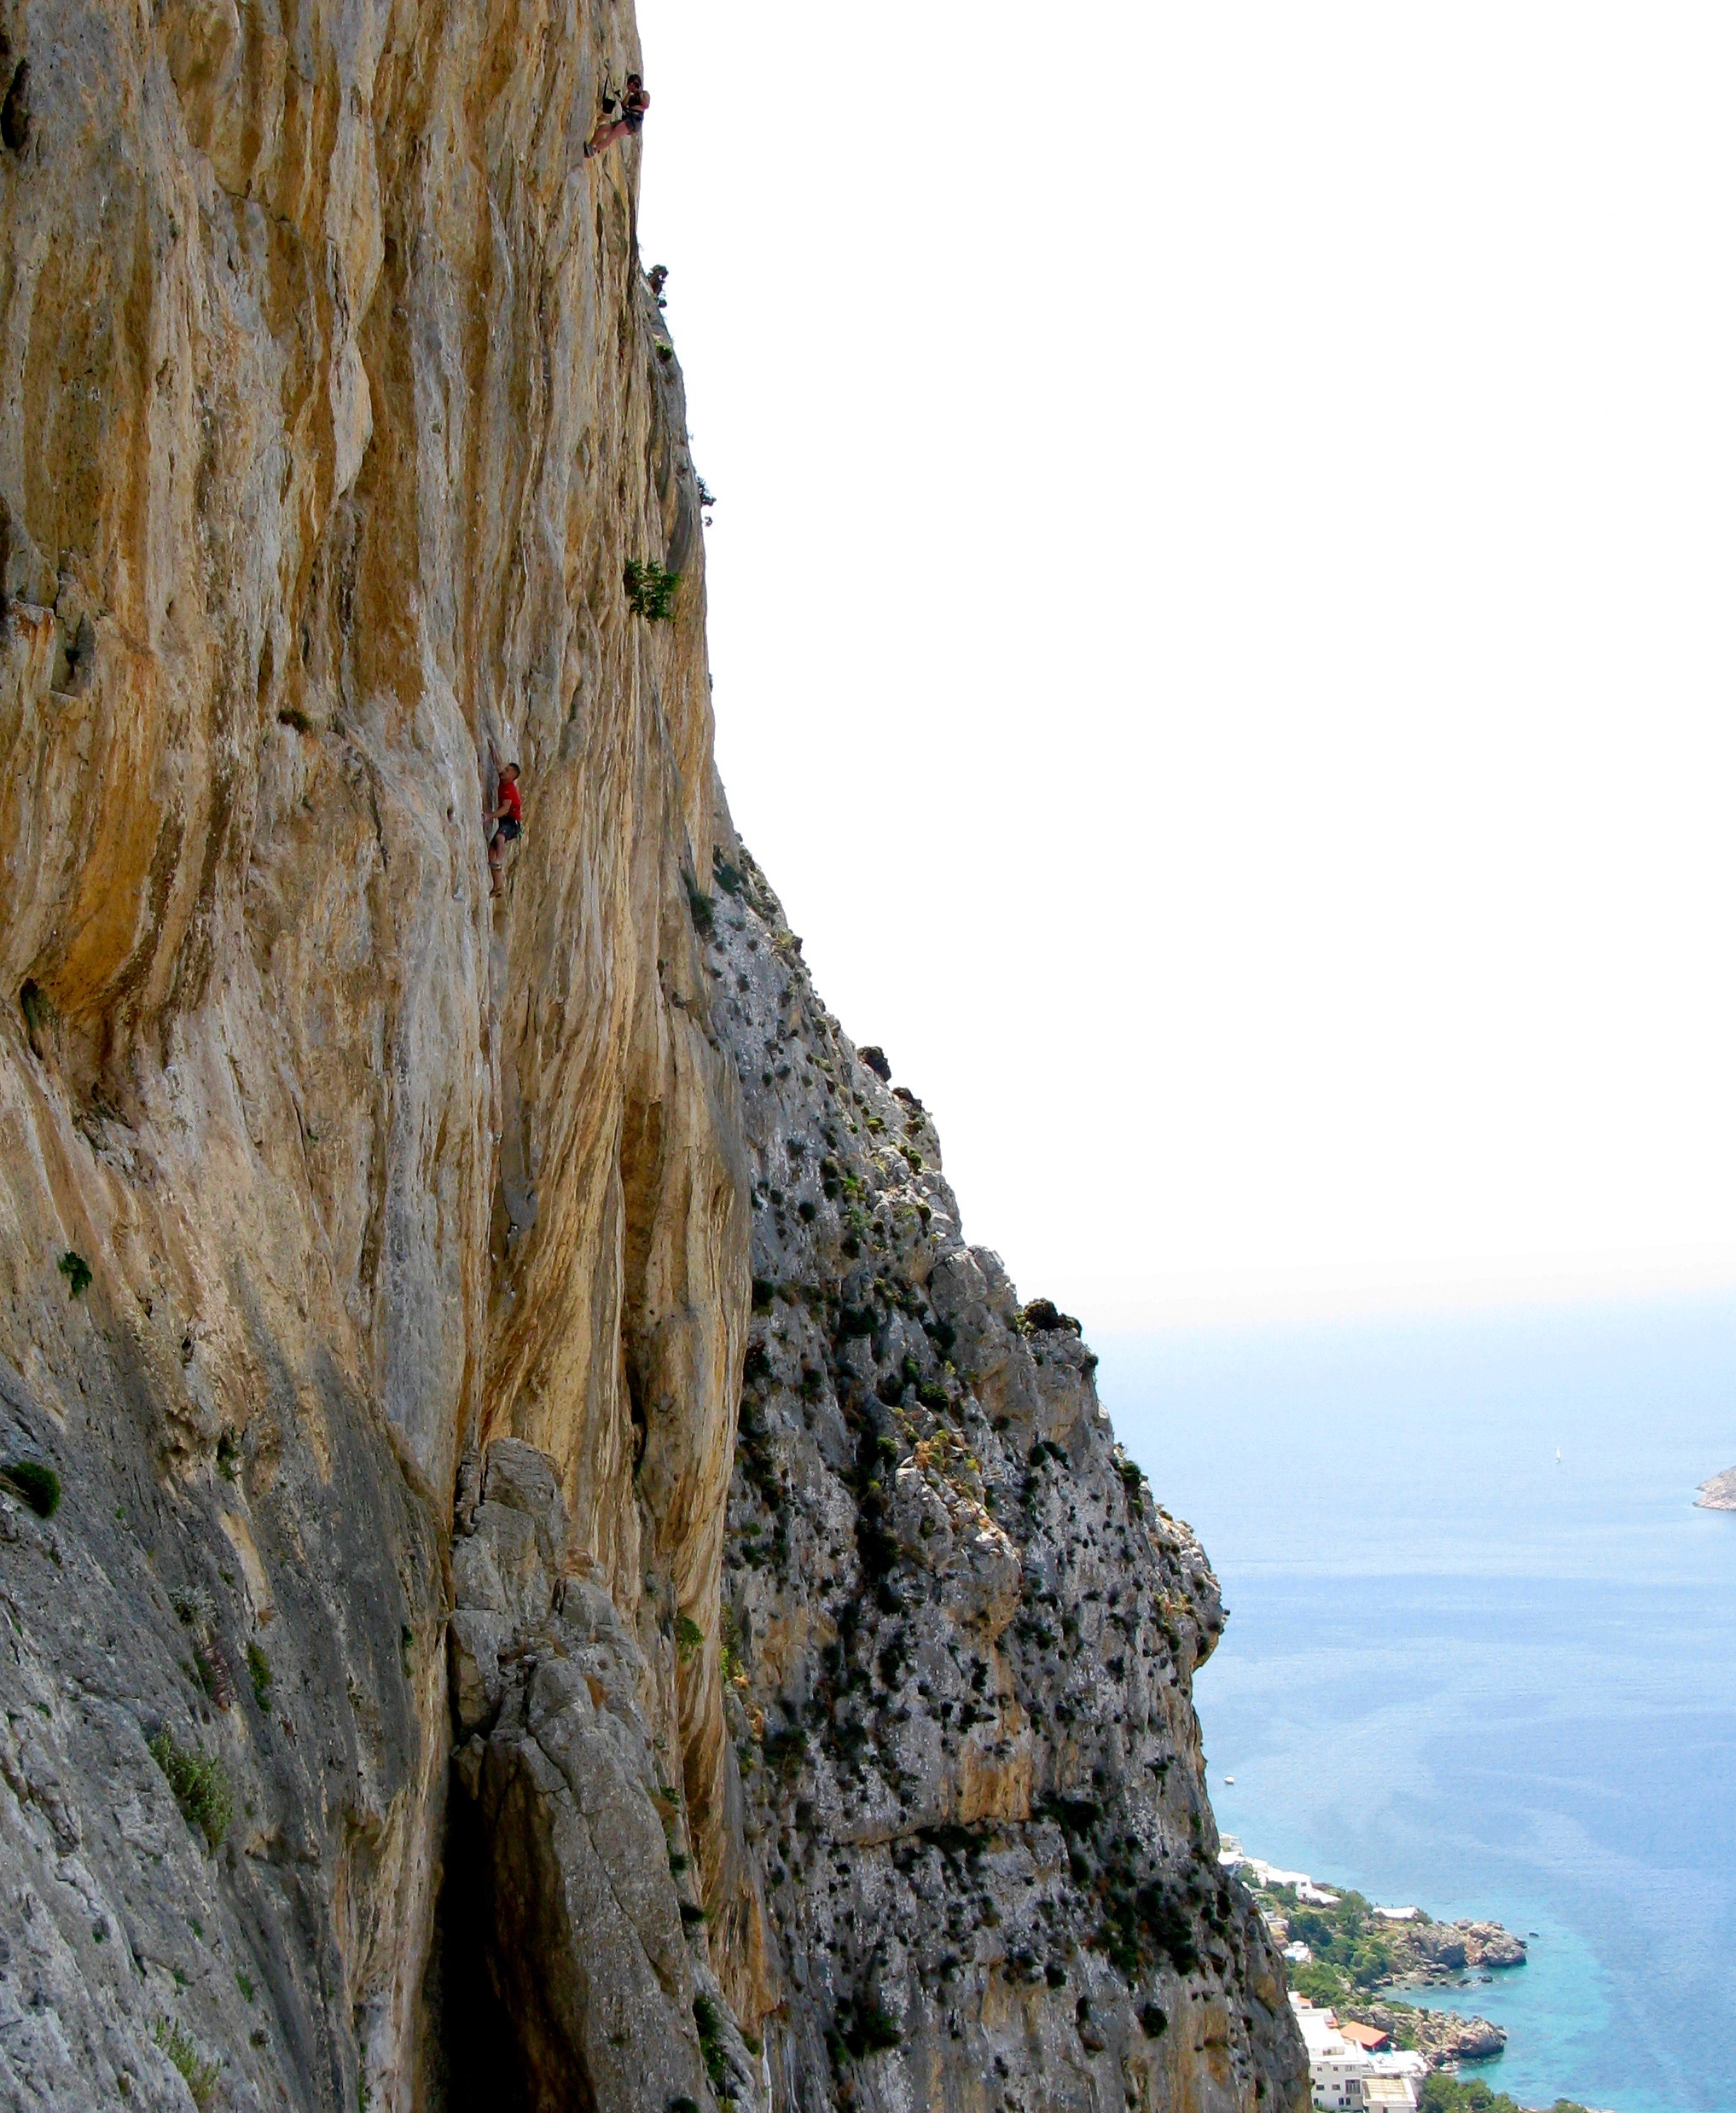 Fudoshin 7c+, Lower Spartan Wall, Kalymnos.  Photo: Selina Chen